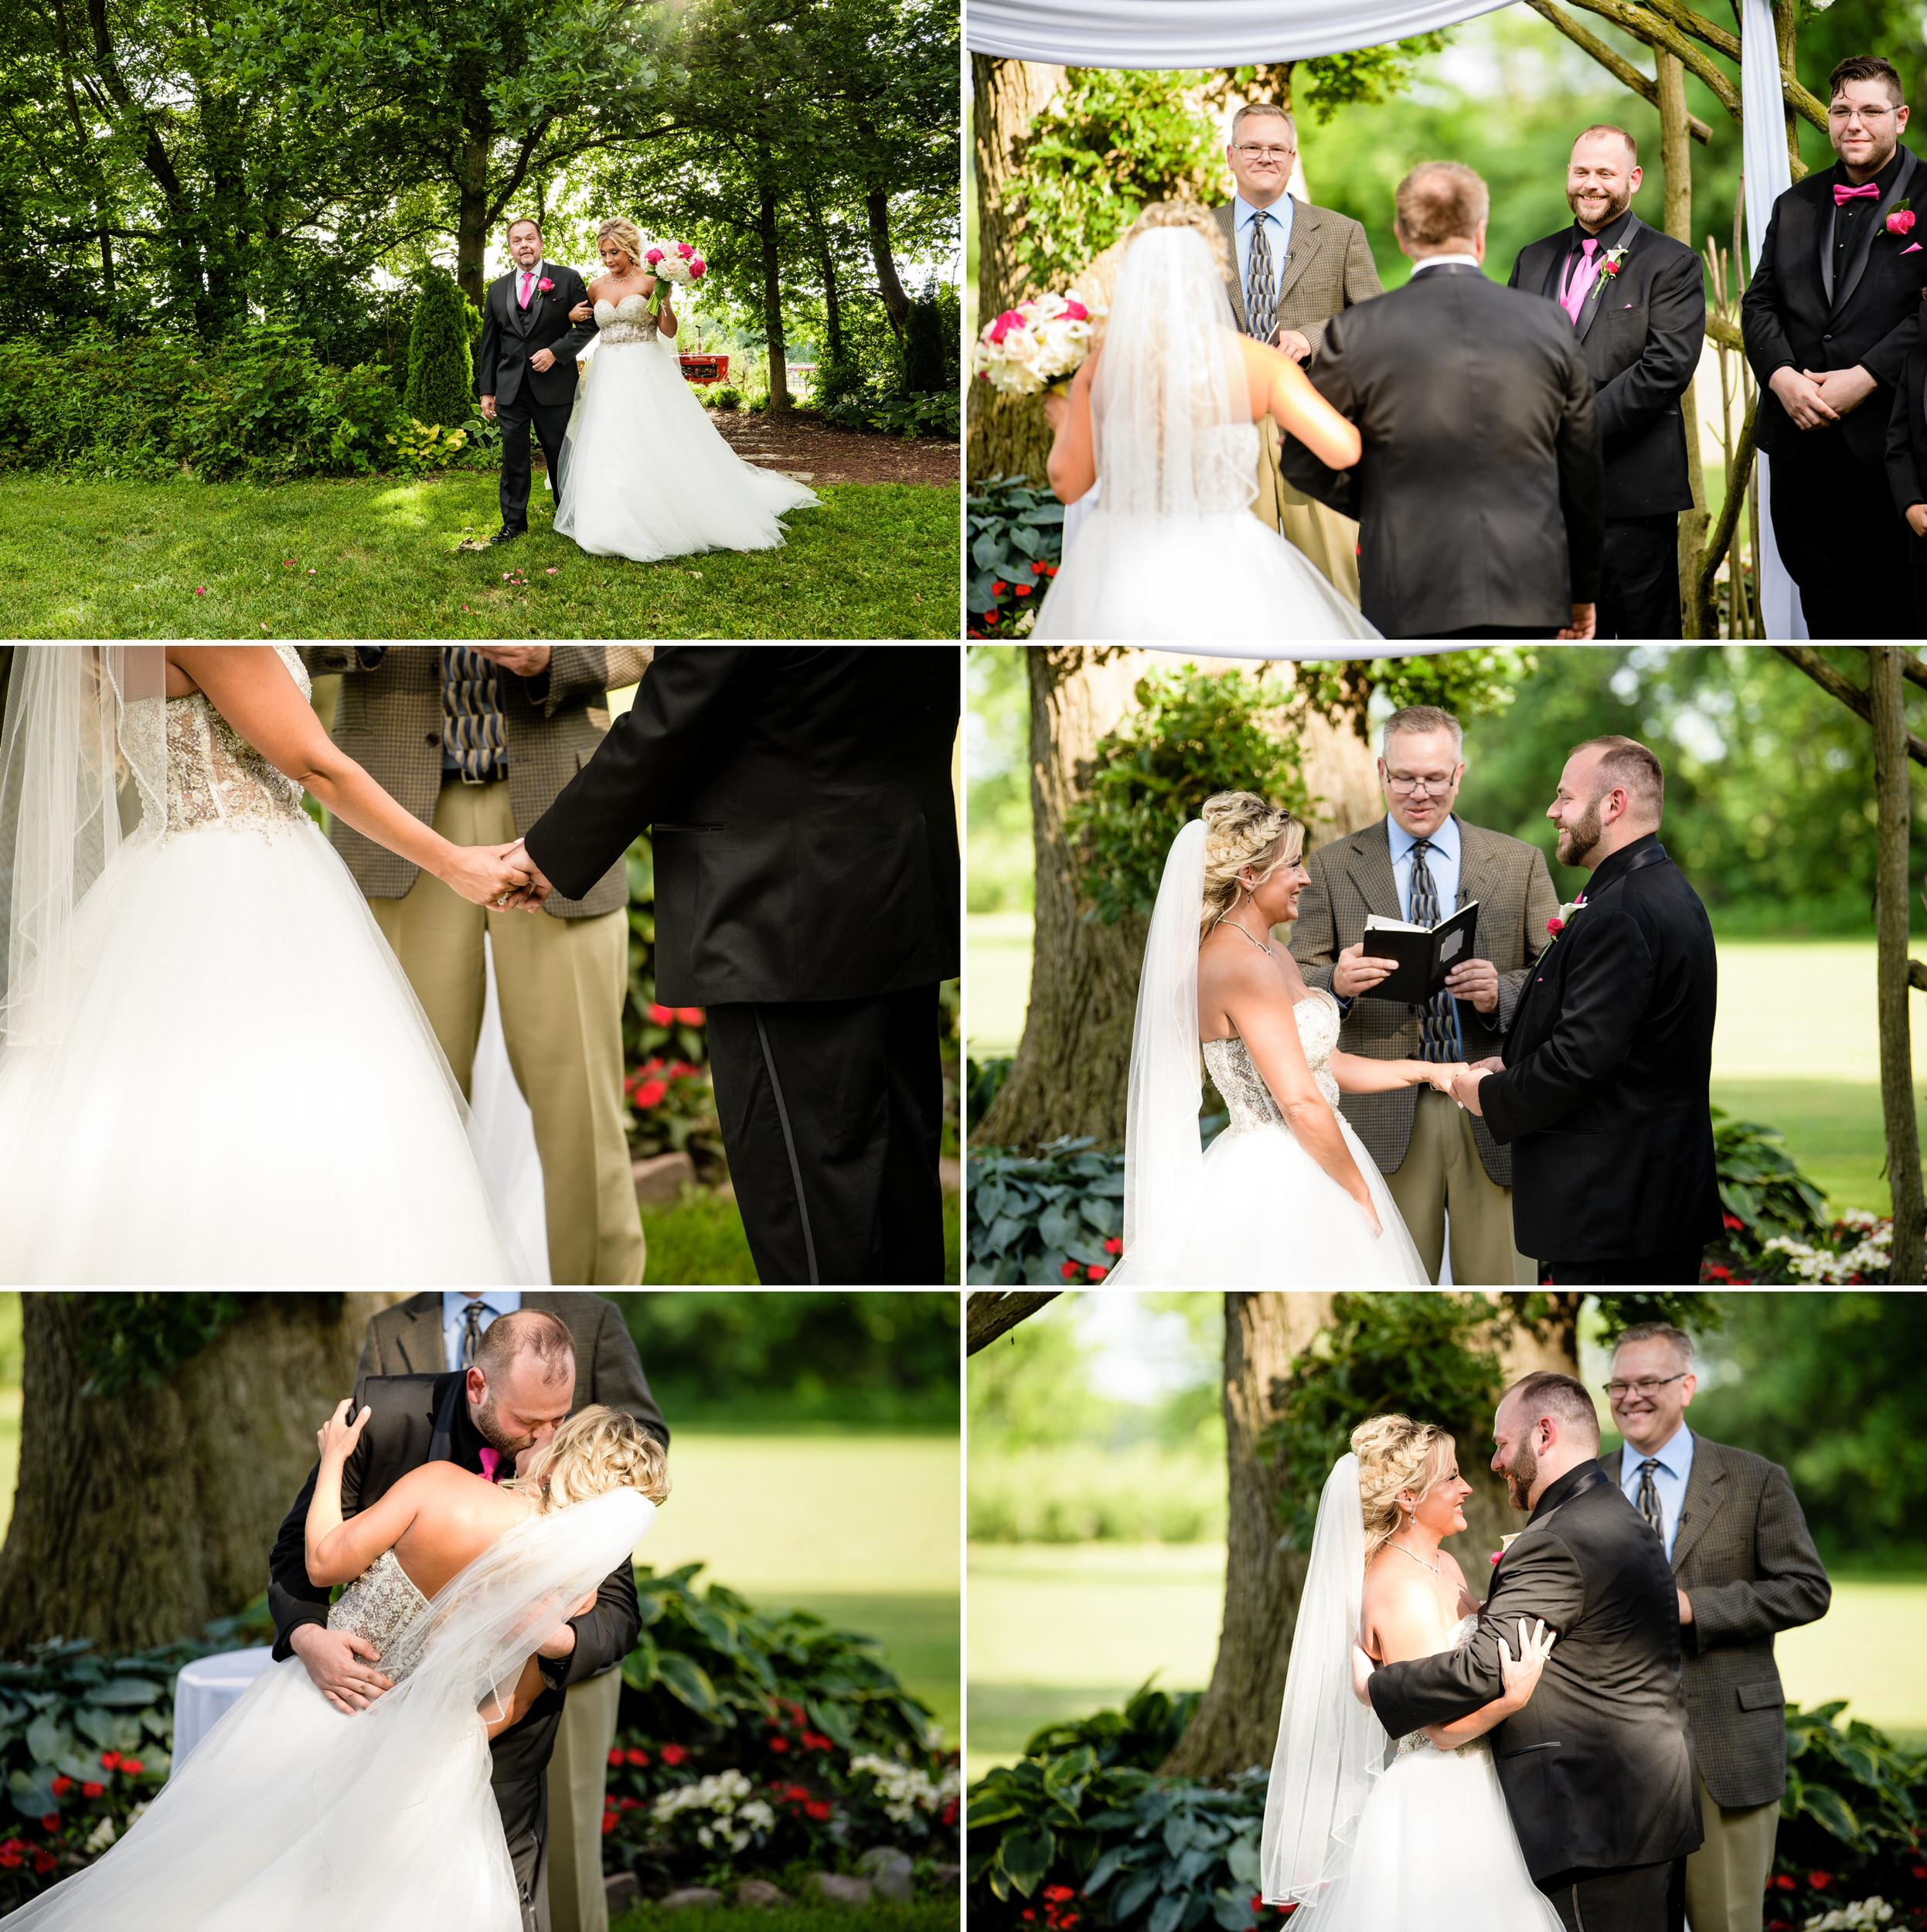 Outdoor wedding ceremony at the big oak tree.